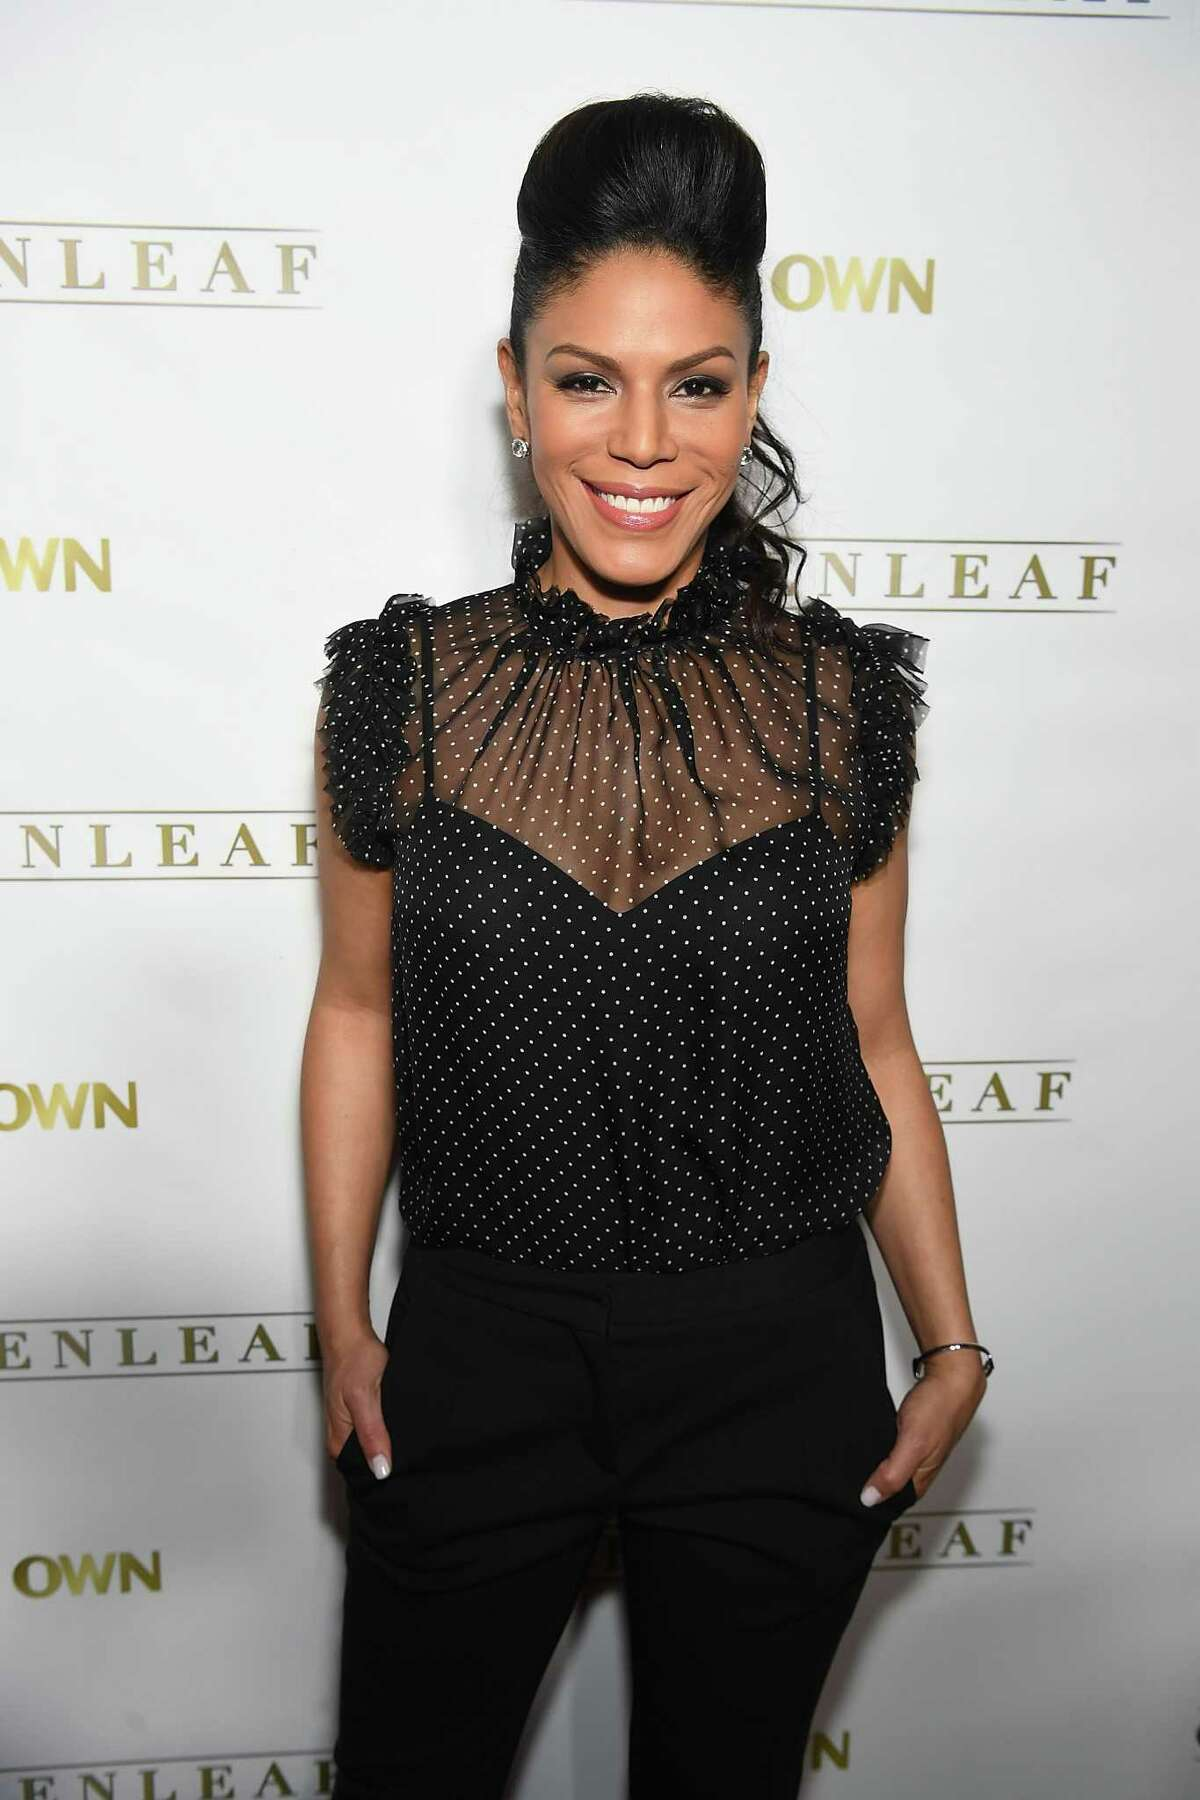 Merle Dandridge says the look of her character, Grace, becomes more polished as the show goes on.